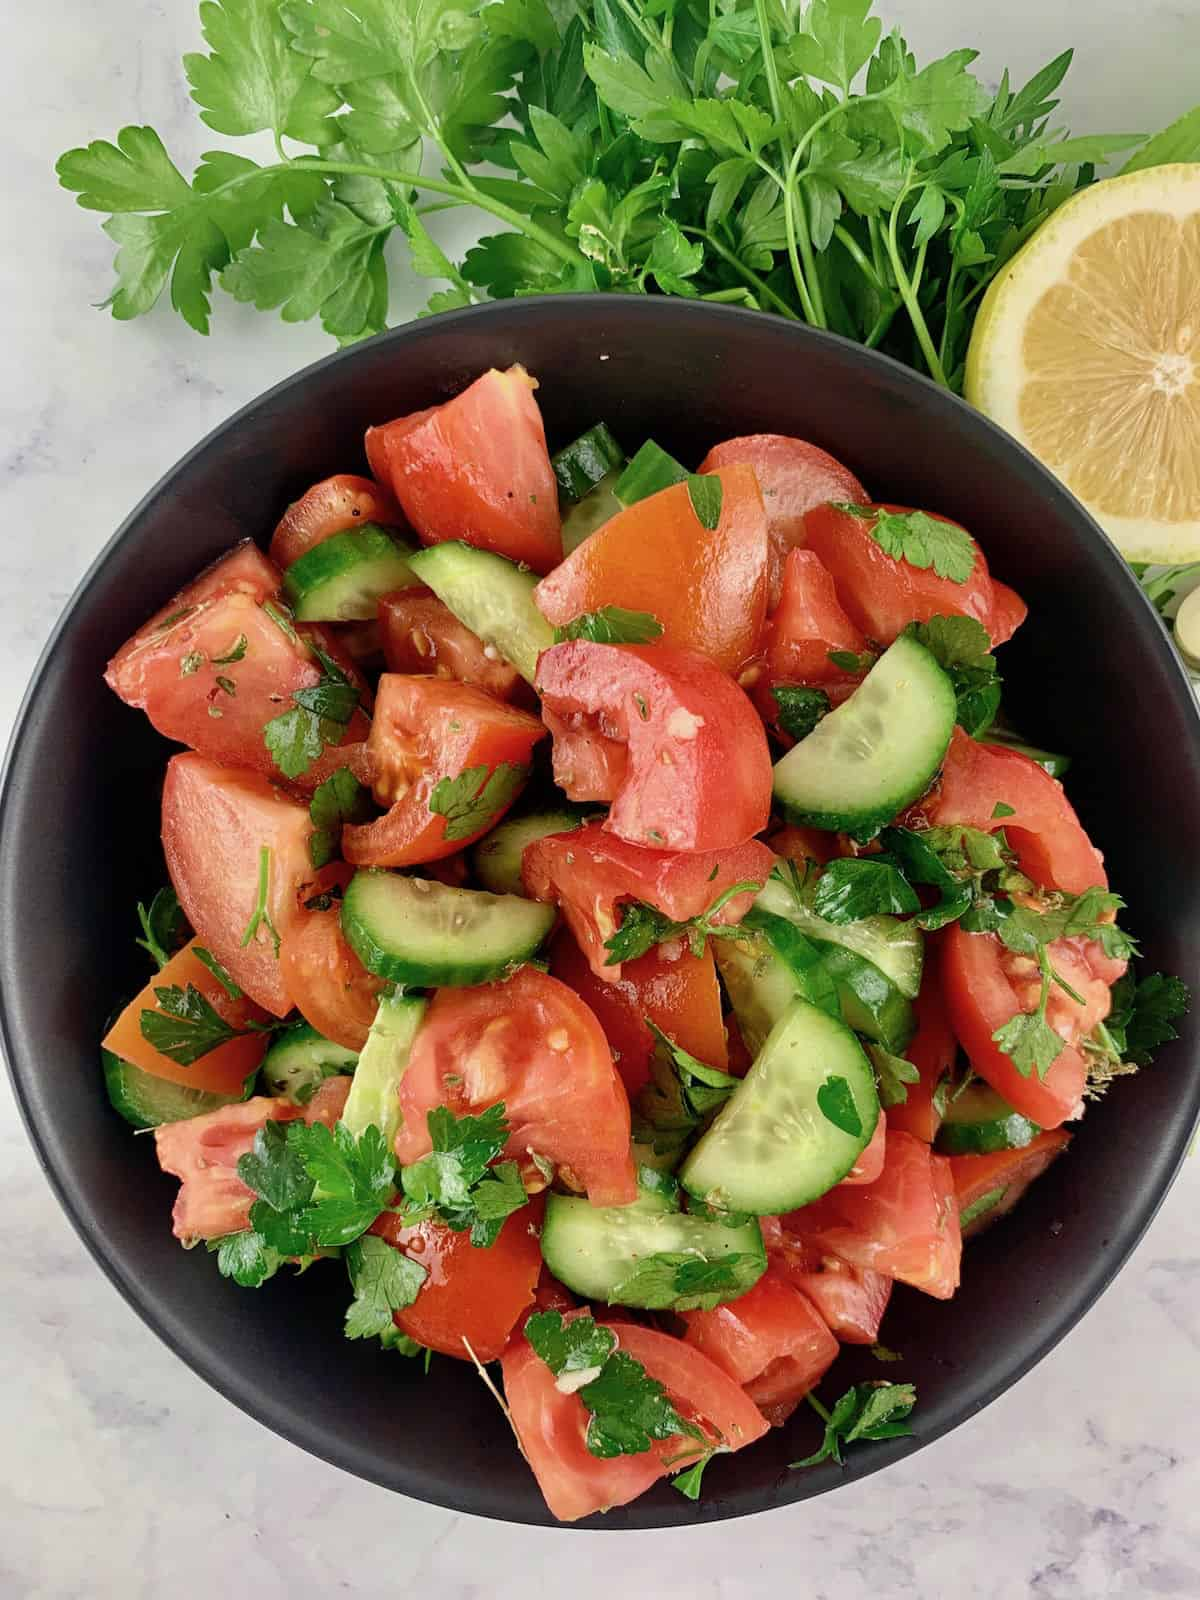 MEDITERRANEAN TOMATO CUCUMBER SALAD IN A BLACK BOWL WITH PARSLEY, LEMON AND GARLIC ON THE SIDE